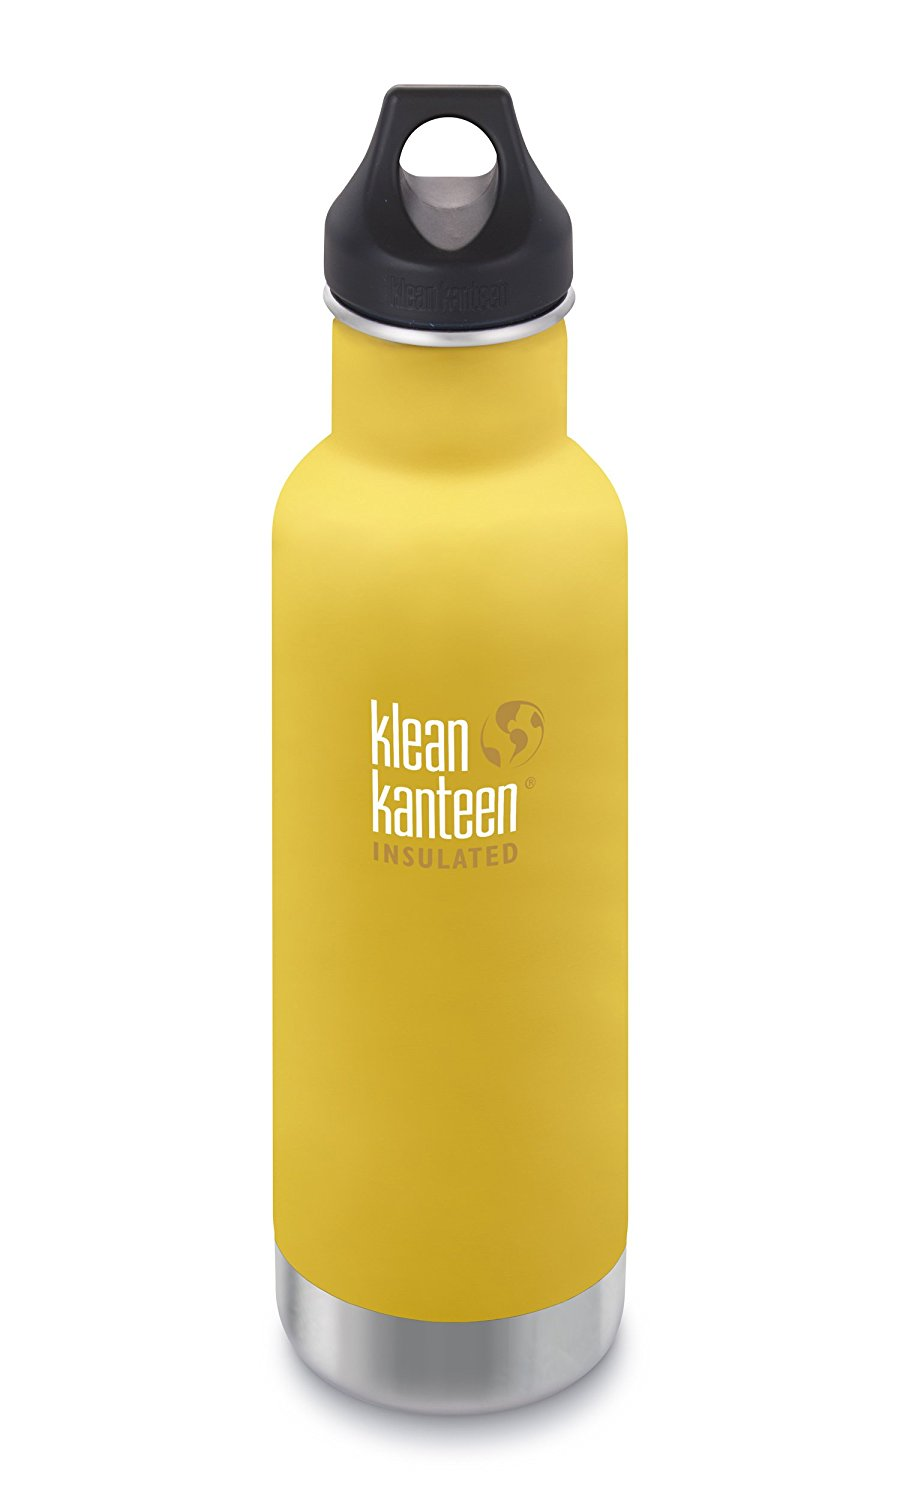 ce246b7faa Best insulated water bottles: Klean Kanteen, S'well, and more